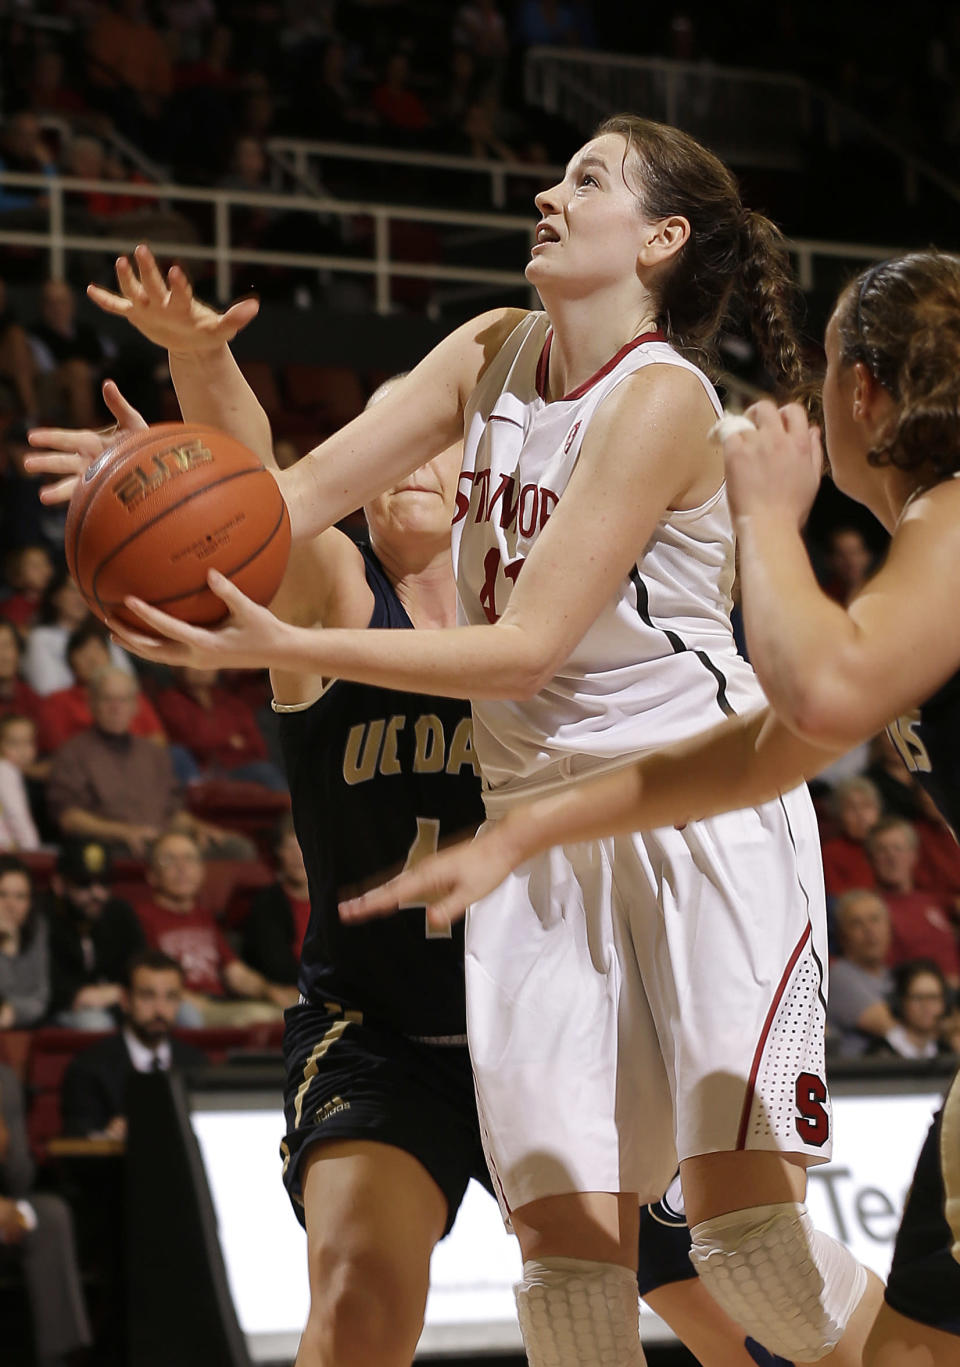 Stanford forward Bonnie Samuelson, center, shoots against UC Davis during the second half of an NCAA college basketball game in Stanford, Calif., Monday, Dec. 22, 2014. Stanford won 71-59. (AP Photo/Jeff Chiu)